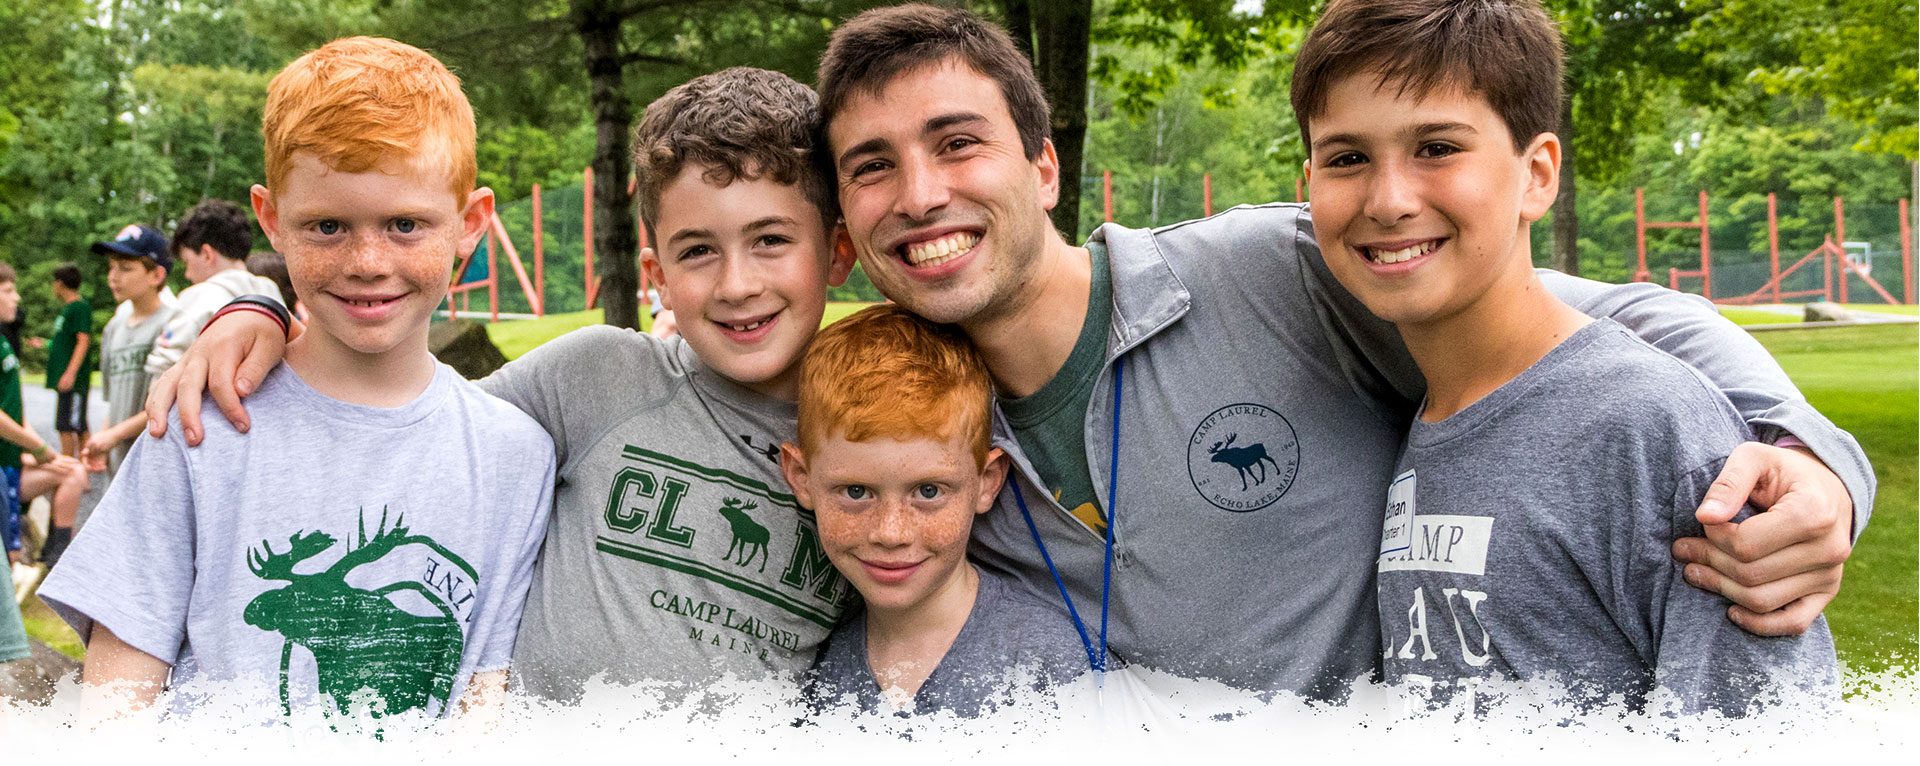 Frequently asked questions about Camp Laurel in Maine